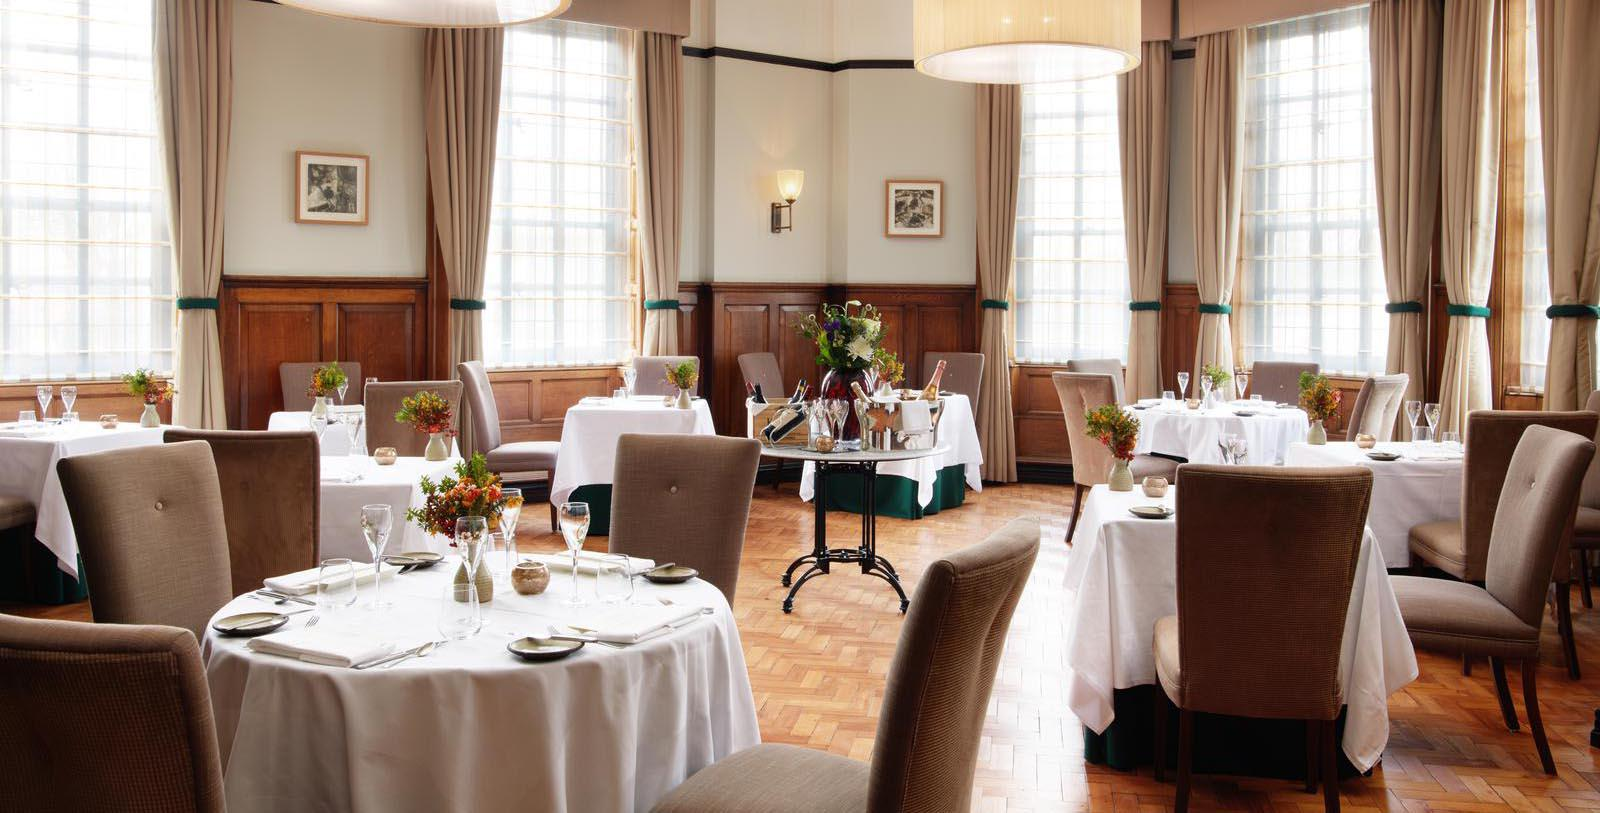 Image of Private Dining at Hudsons at The Grand York, 1906, Member of Historic Hotels Worldwide, in York, England, United Kingdom, Taste